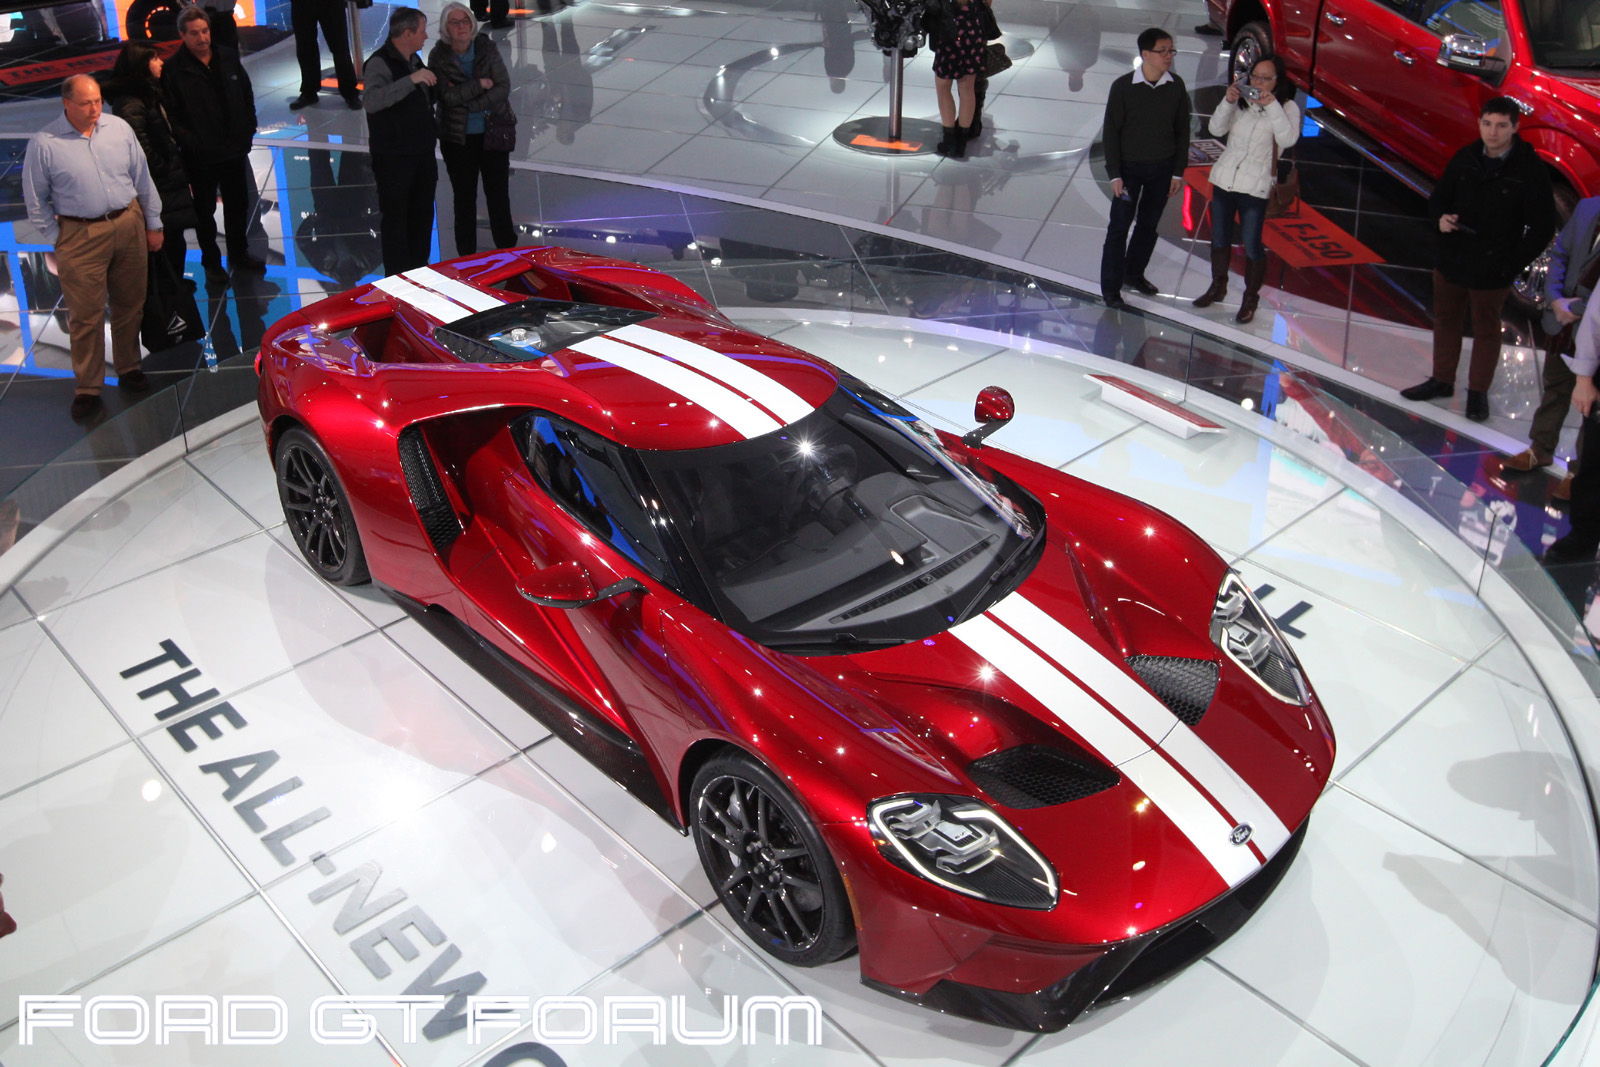 Ford Gt as well Toyota Ts Hybrid V as well Mitsubishi E Evolution Concept V in addition Tesla Model S P D V also Ford F Raptor V. on 2017 ford gt le mans